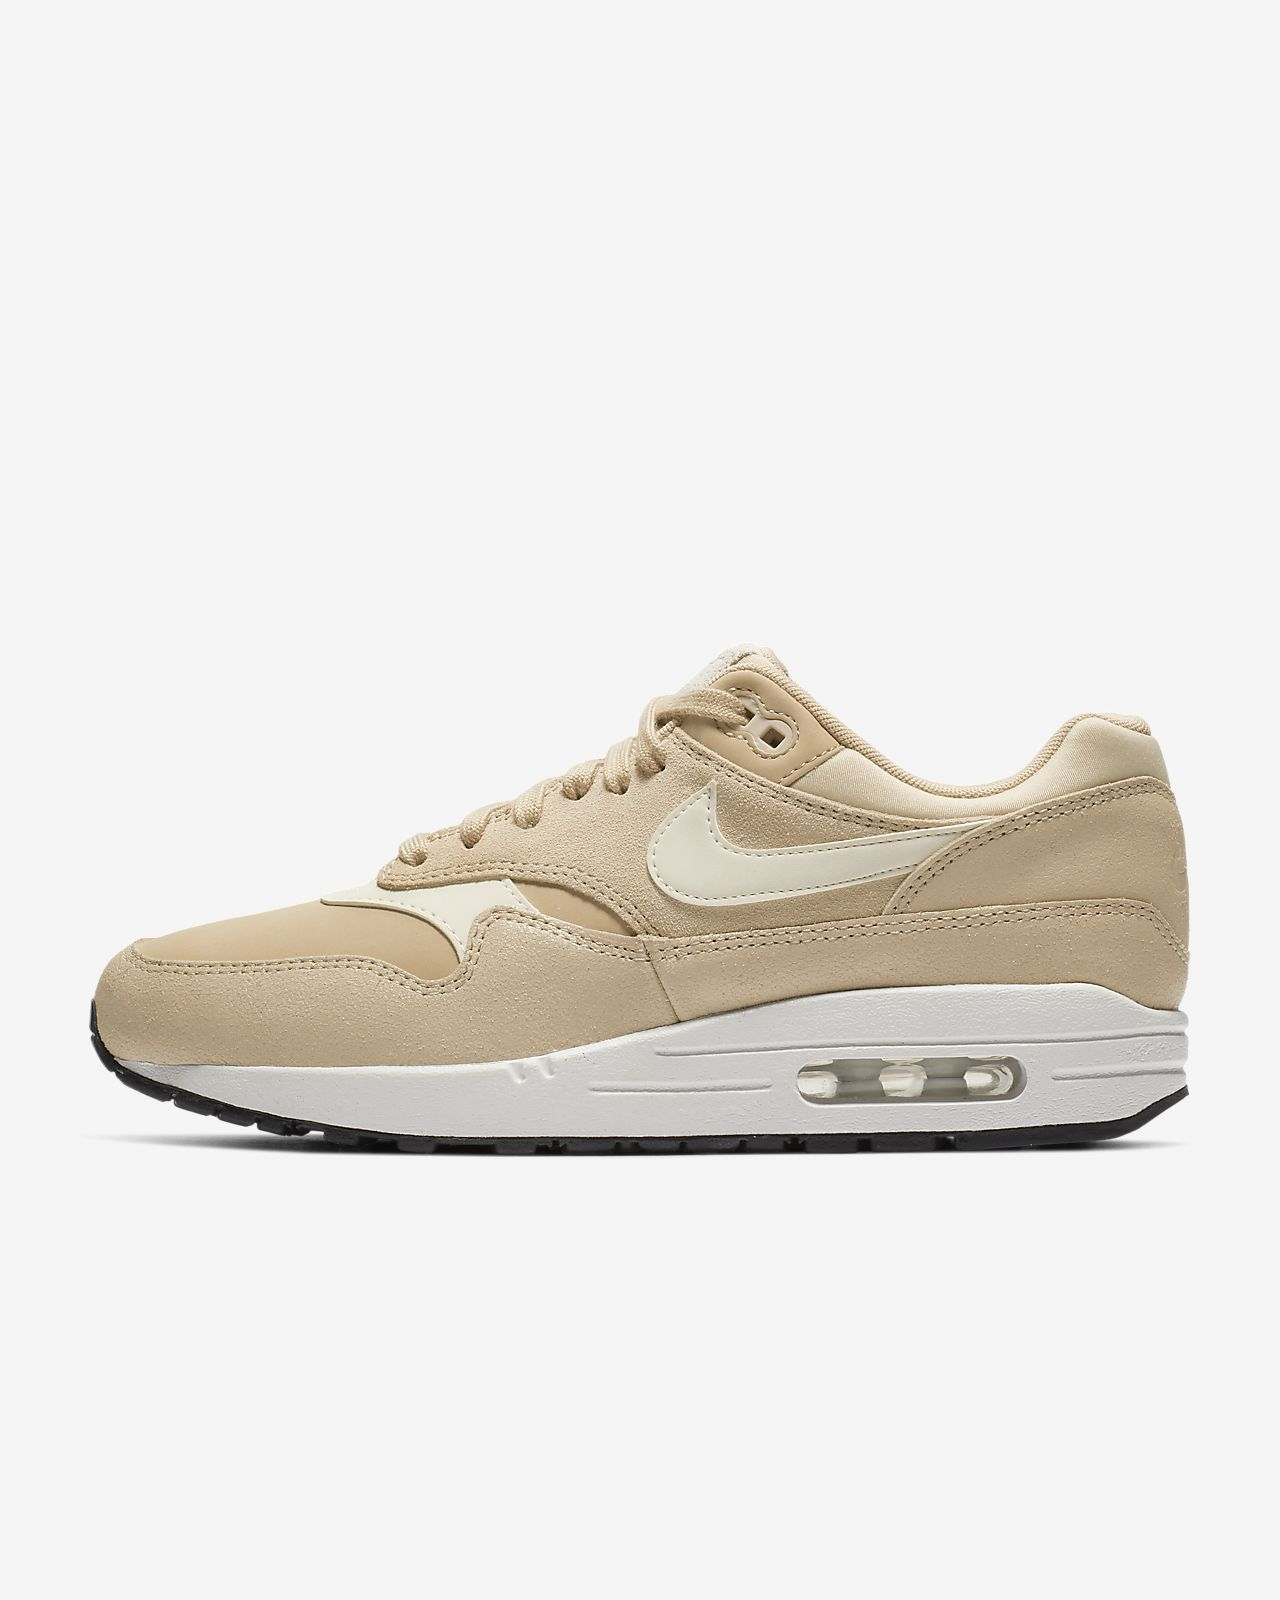 timeless design f0e4d b99af ... Nike Air Max 1 Premium Womens Shoe